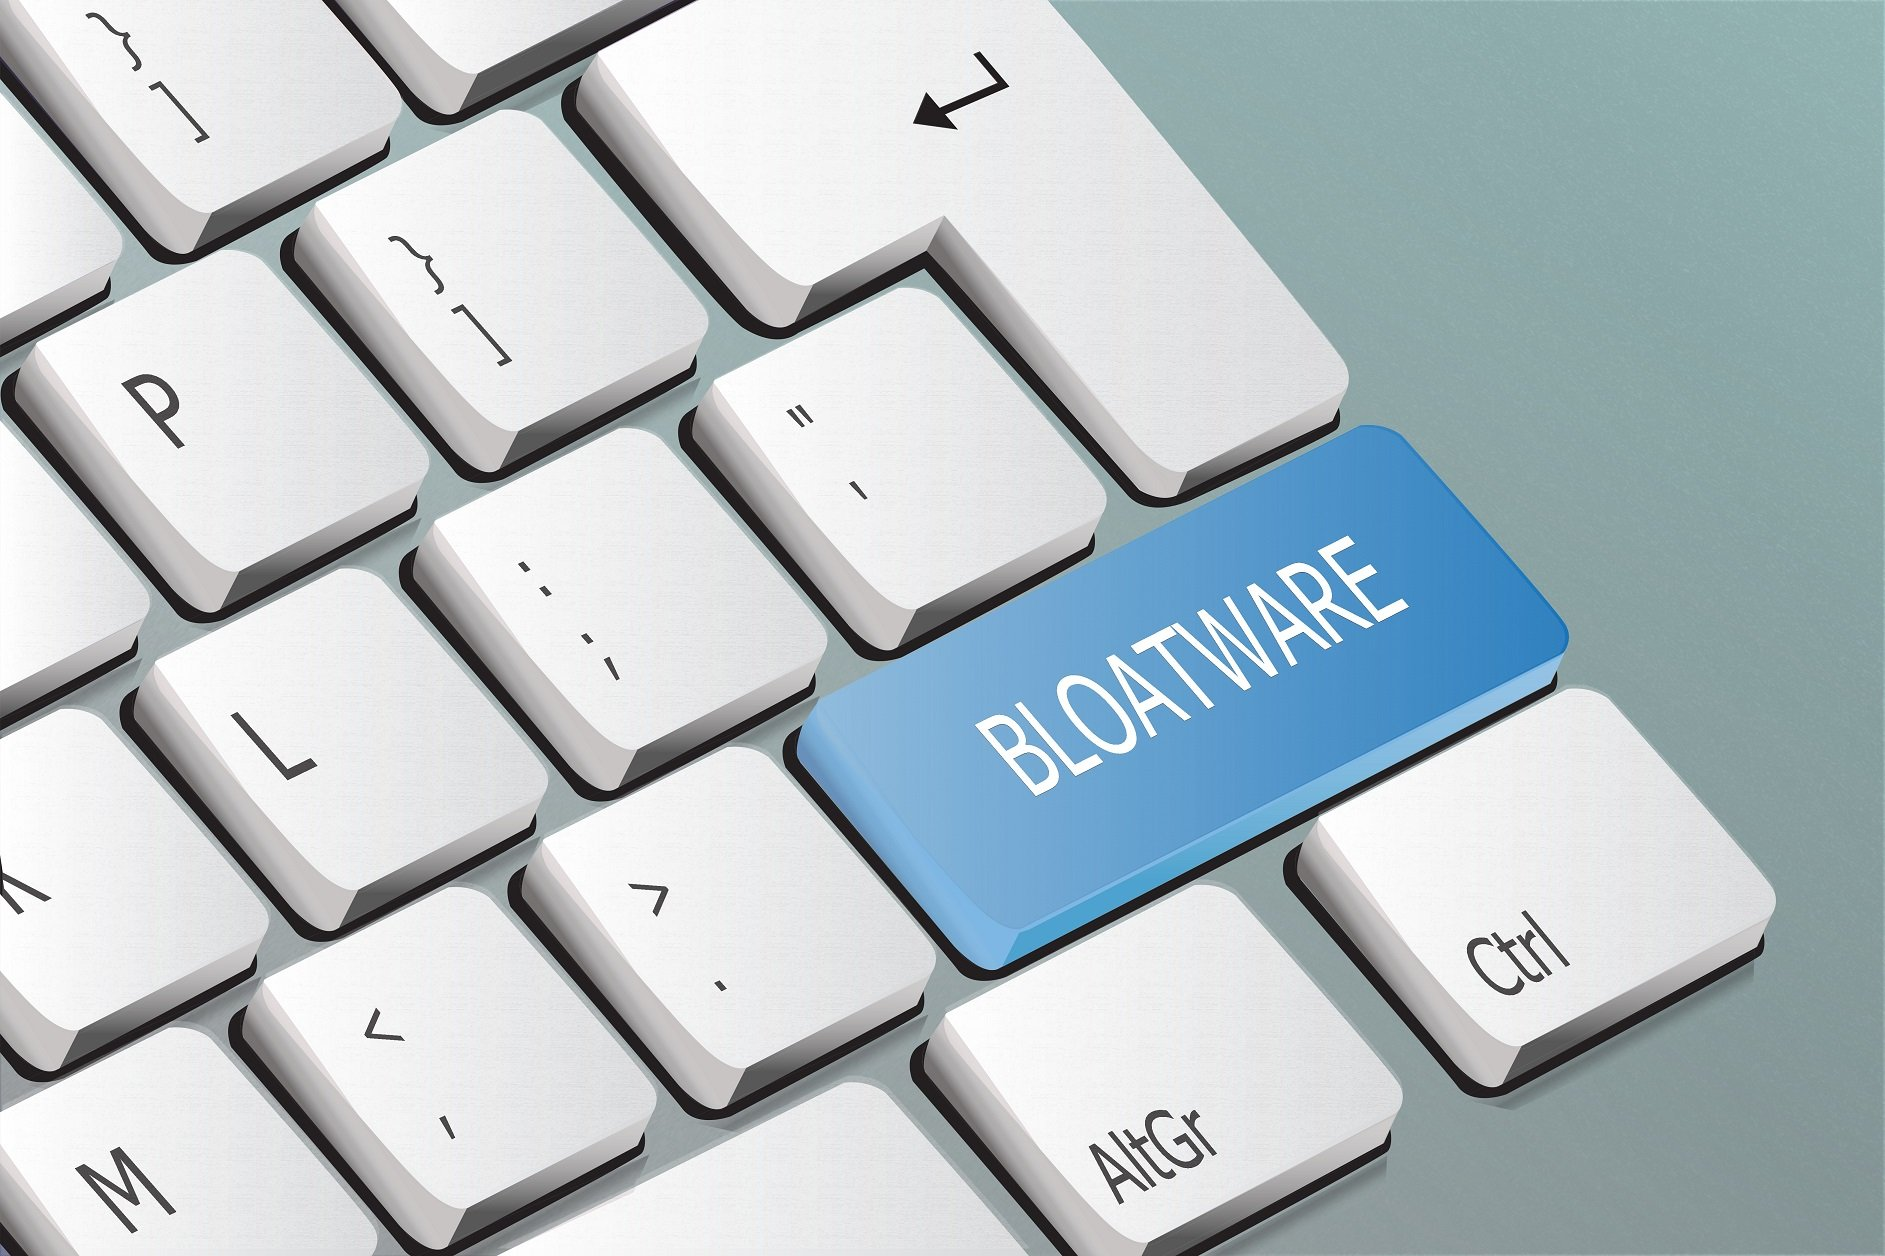 bloatware entfernen android ohne root